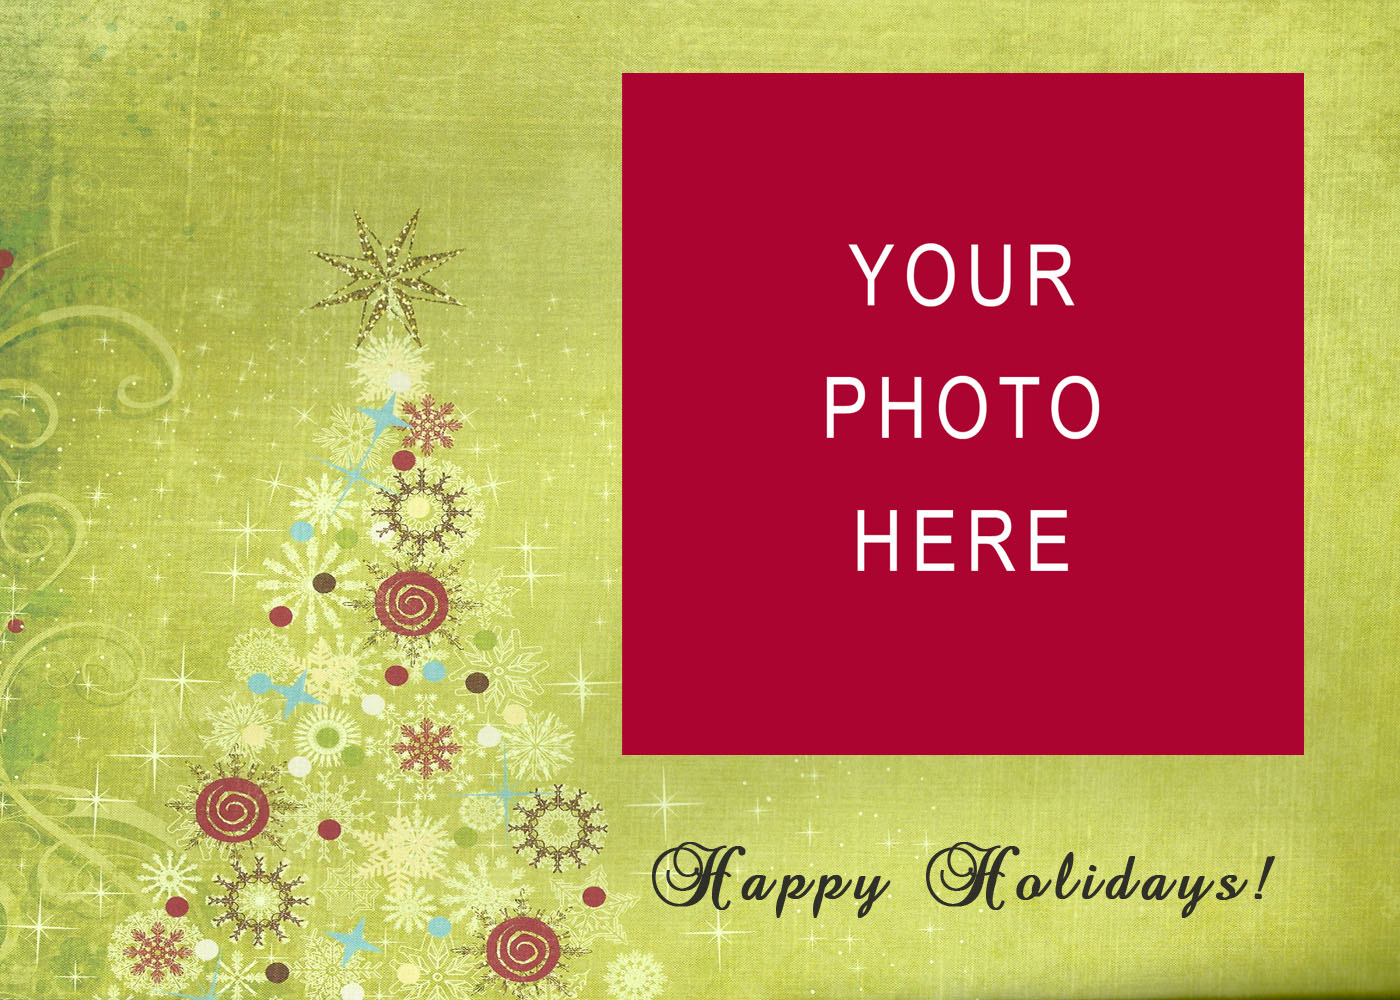 Free Christmas Card Templates.11 Christmas Card Templates Free Download Images Christmas